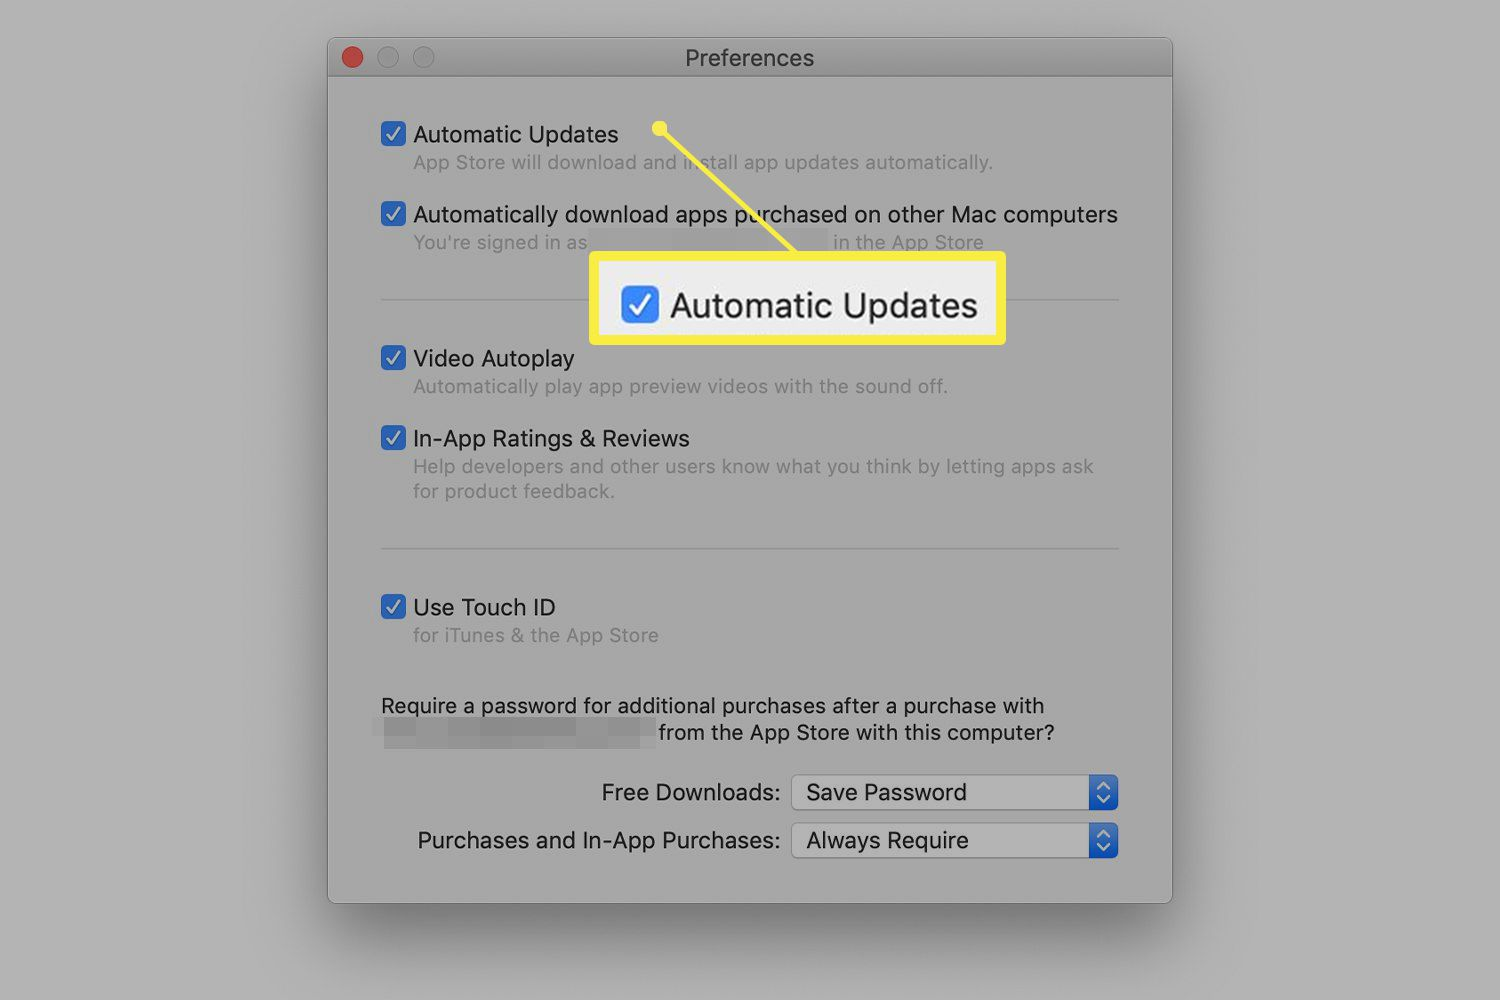 Apple Store preferences showing automatic update options